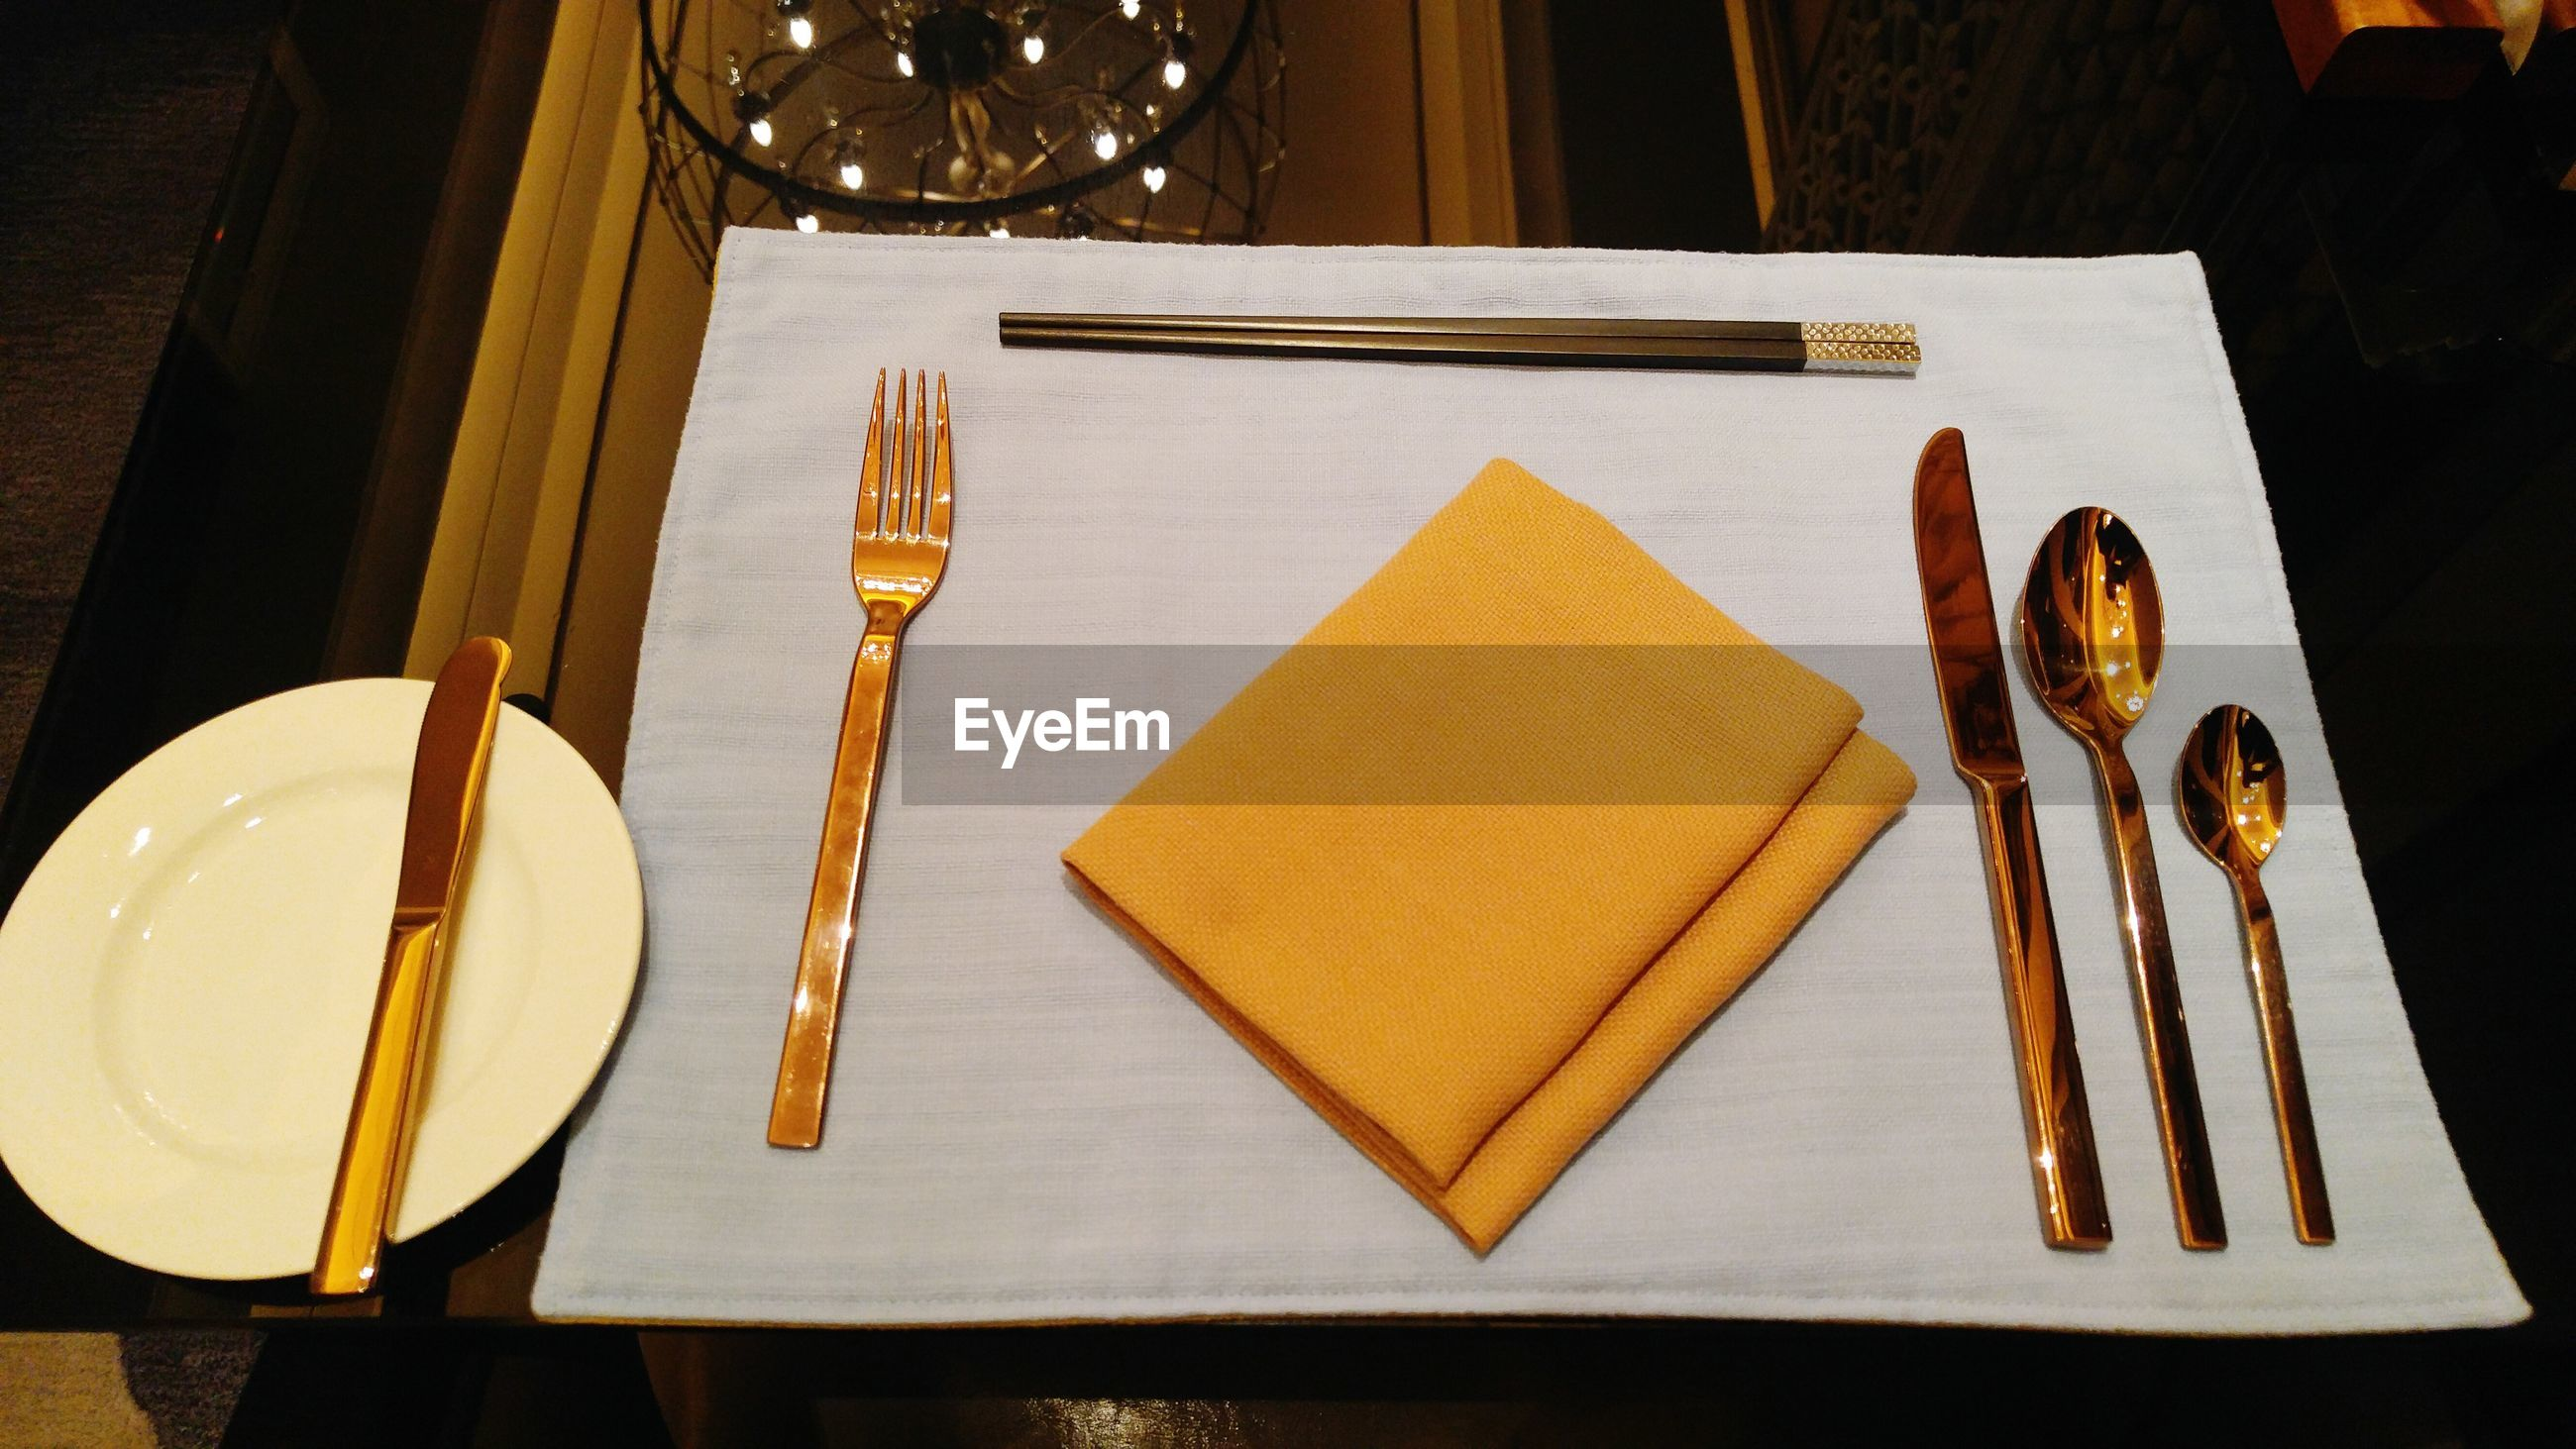 Close-up of place setting on table